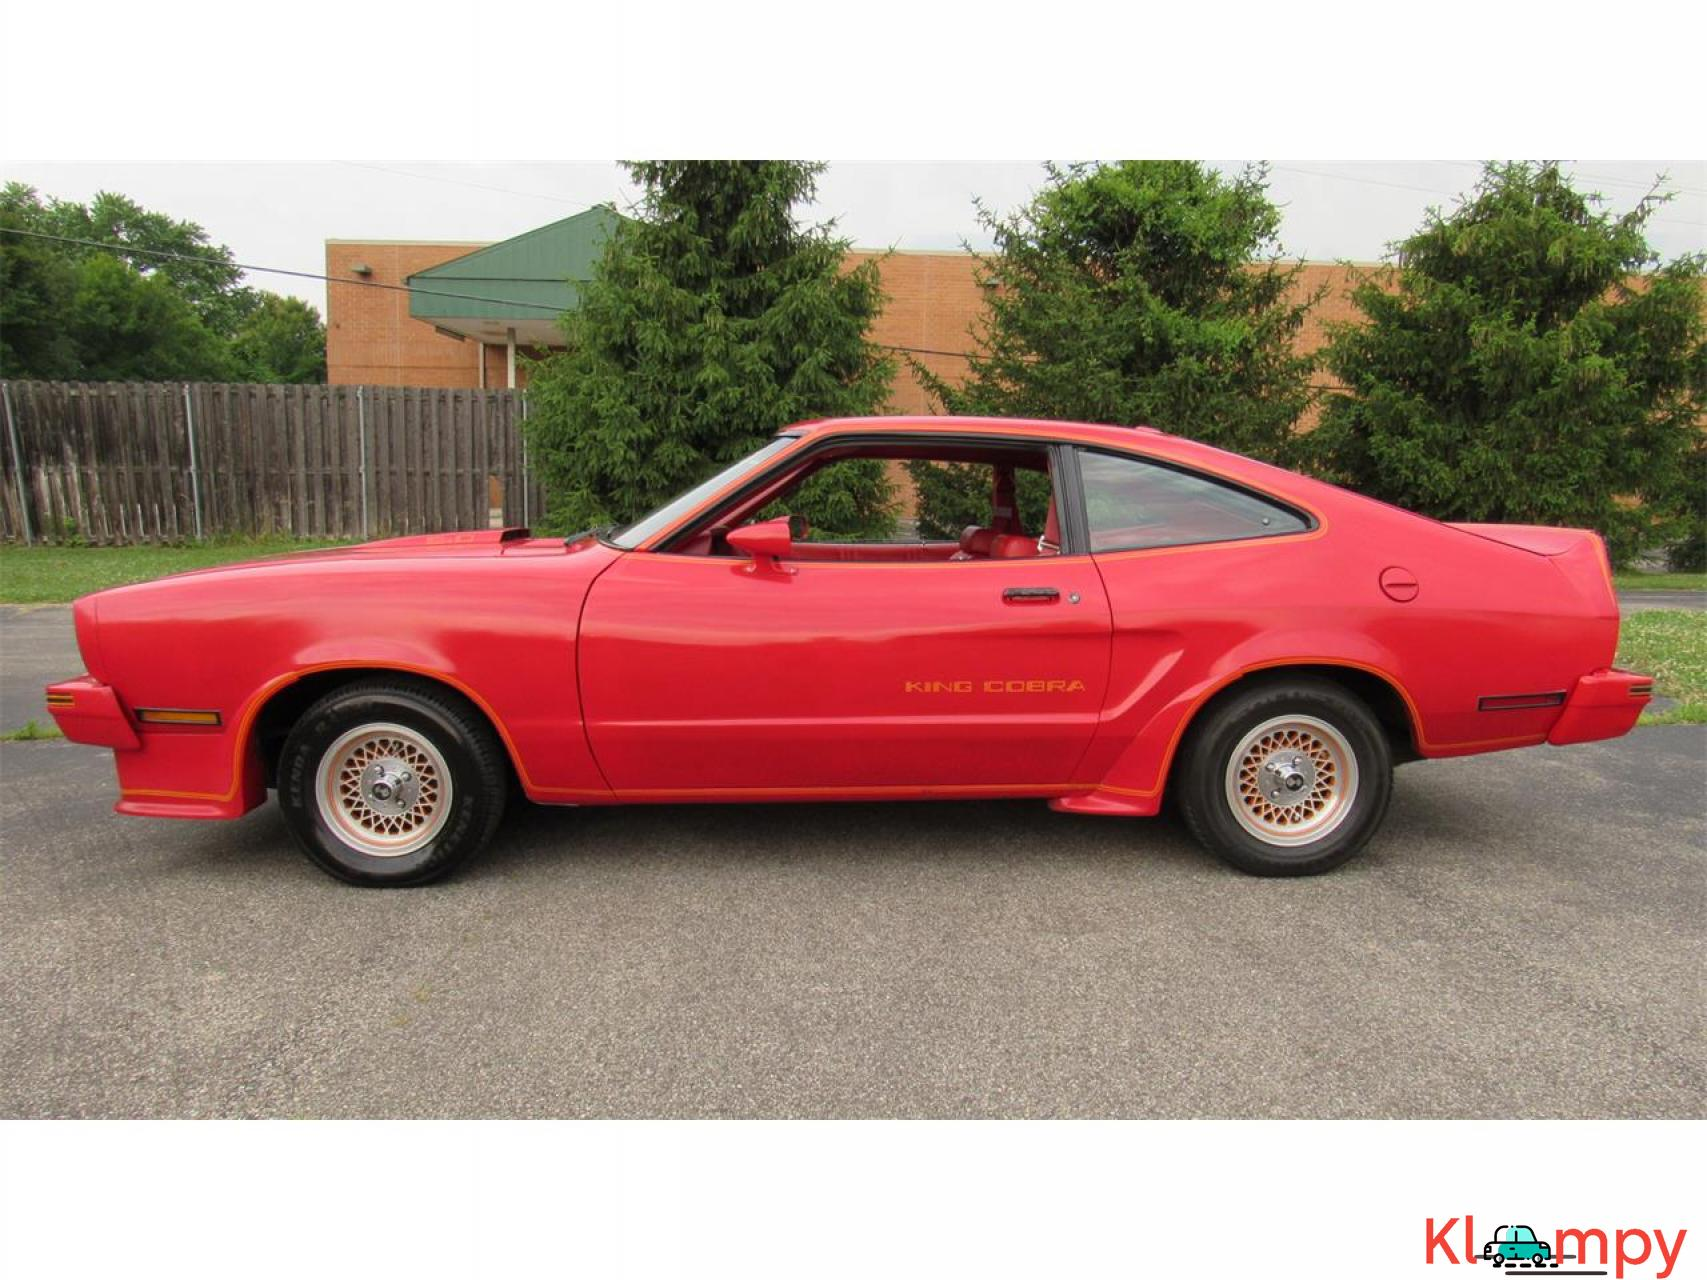 1978 Ford Mustang 302ci V8 Red - 8/17